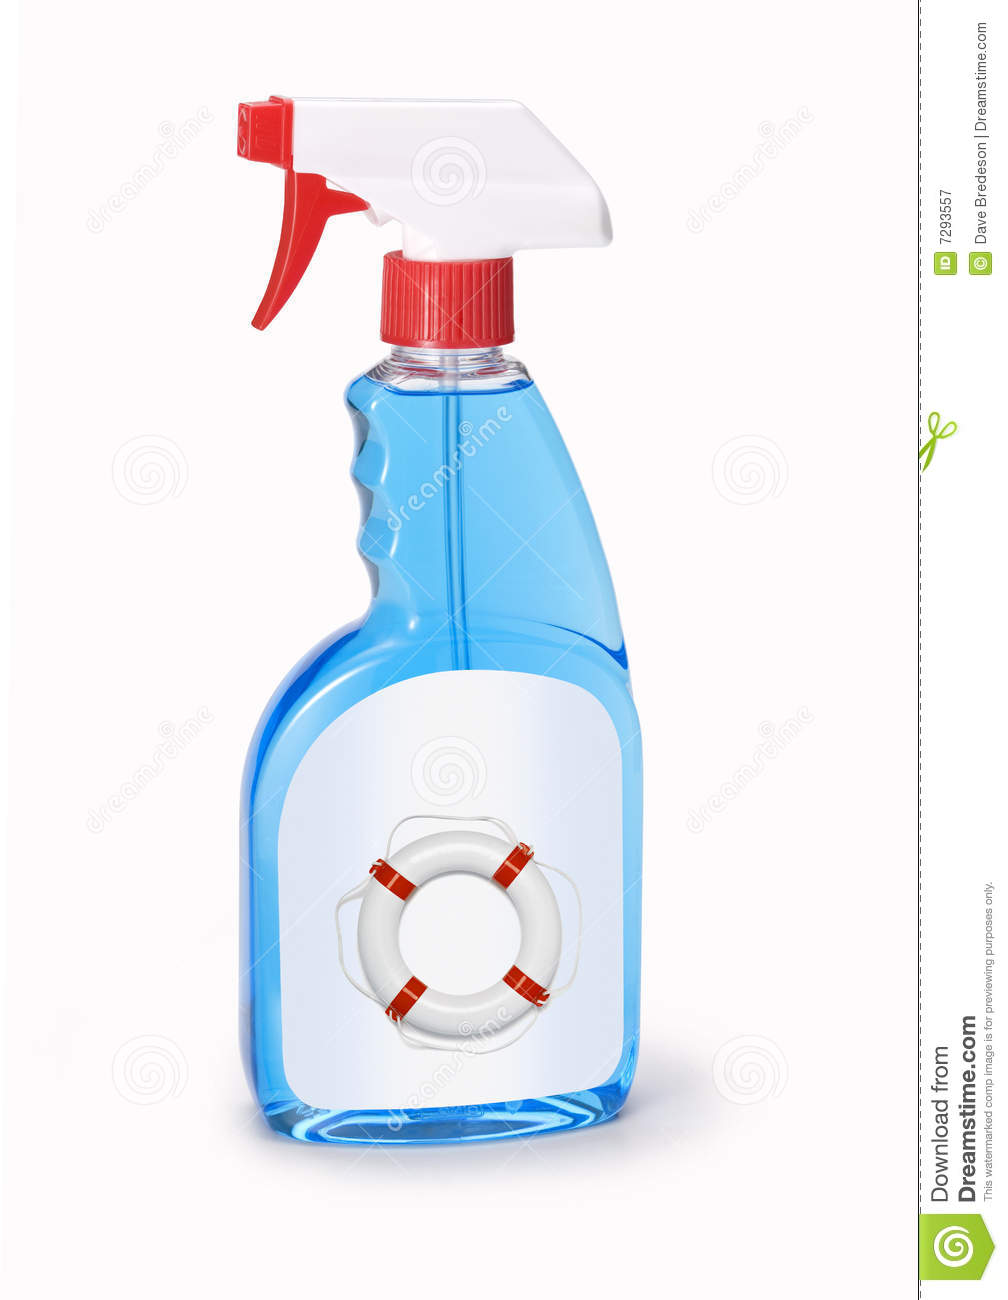 Window Cleaner Spray Bottle Royalty Free Stock Photography